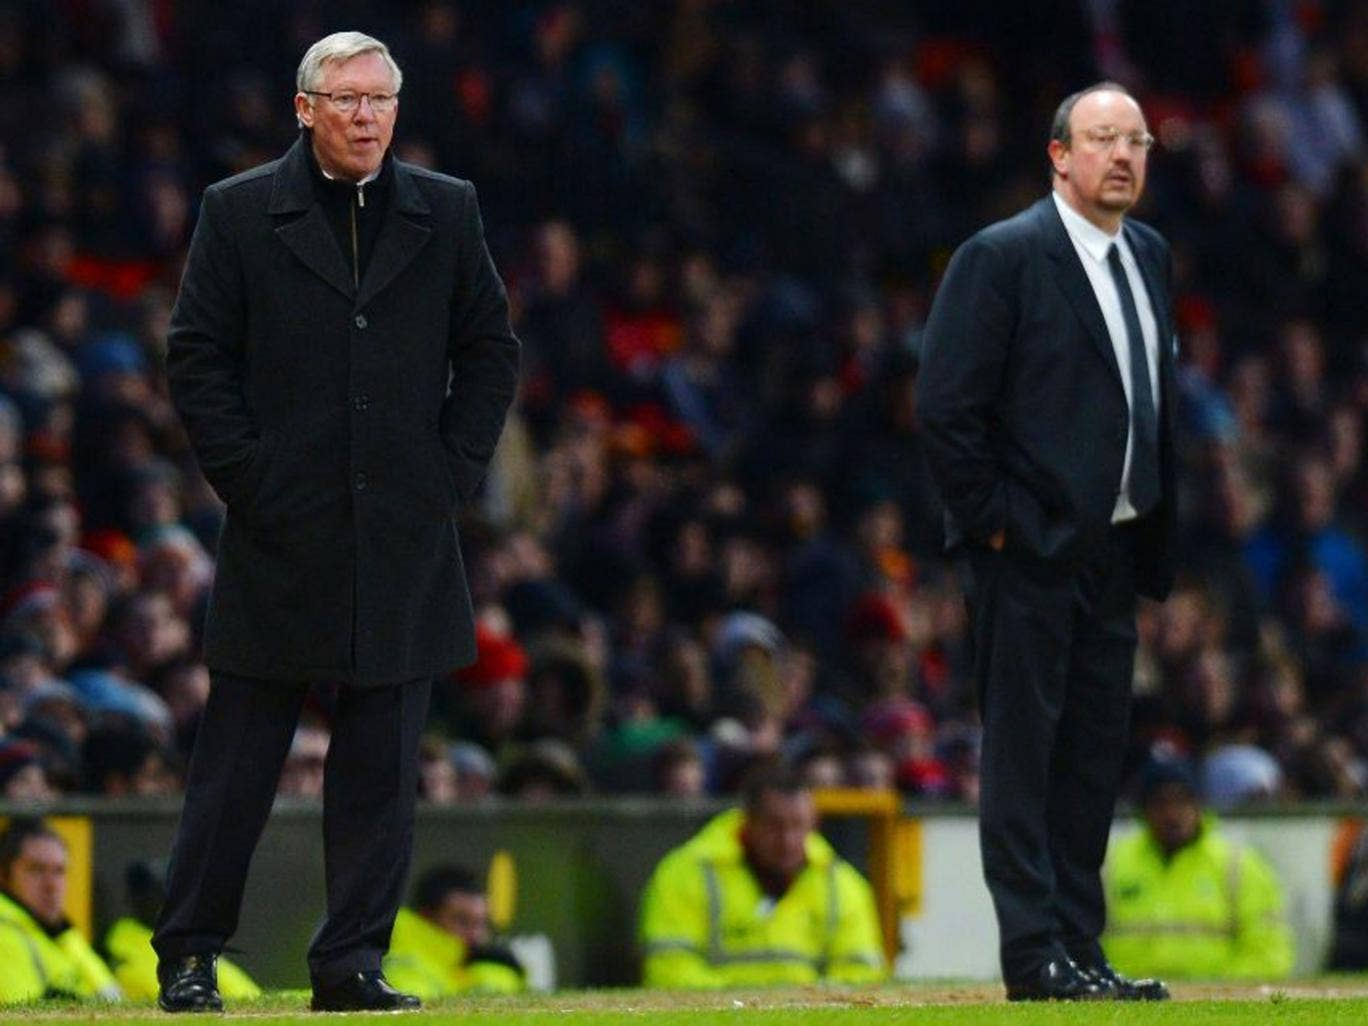 Rafael Benitez (right) poured scorn on Sir Alex Ferguson's claim that the exertions of playing Real Madrid caused Manchester United's collapse against Chelsea